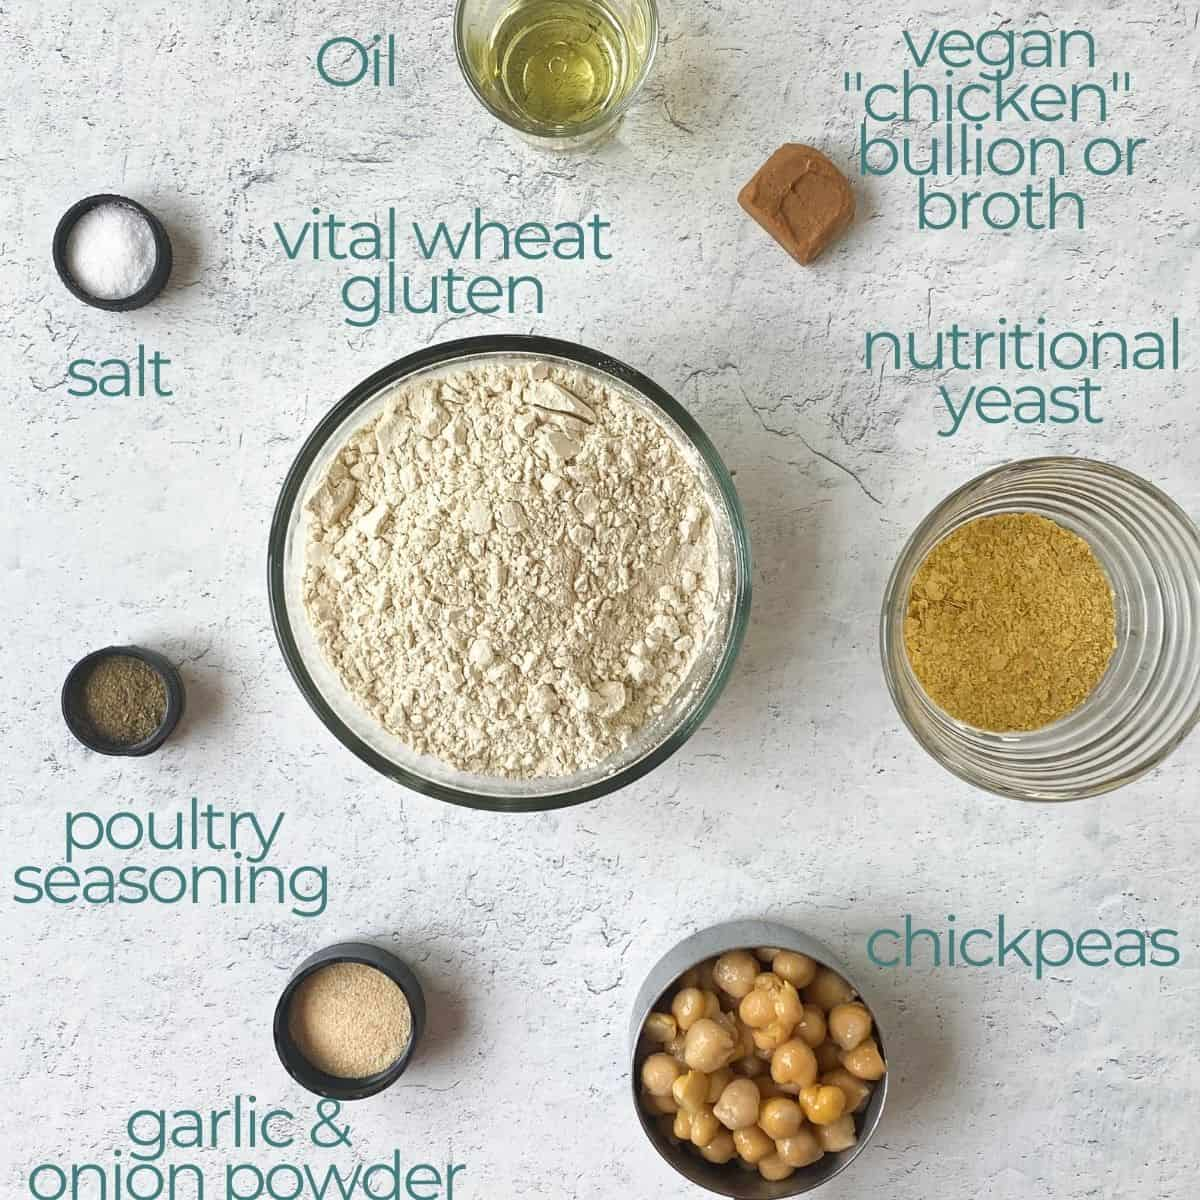 all ingredients needed for recipe  with plater background.